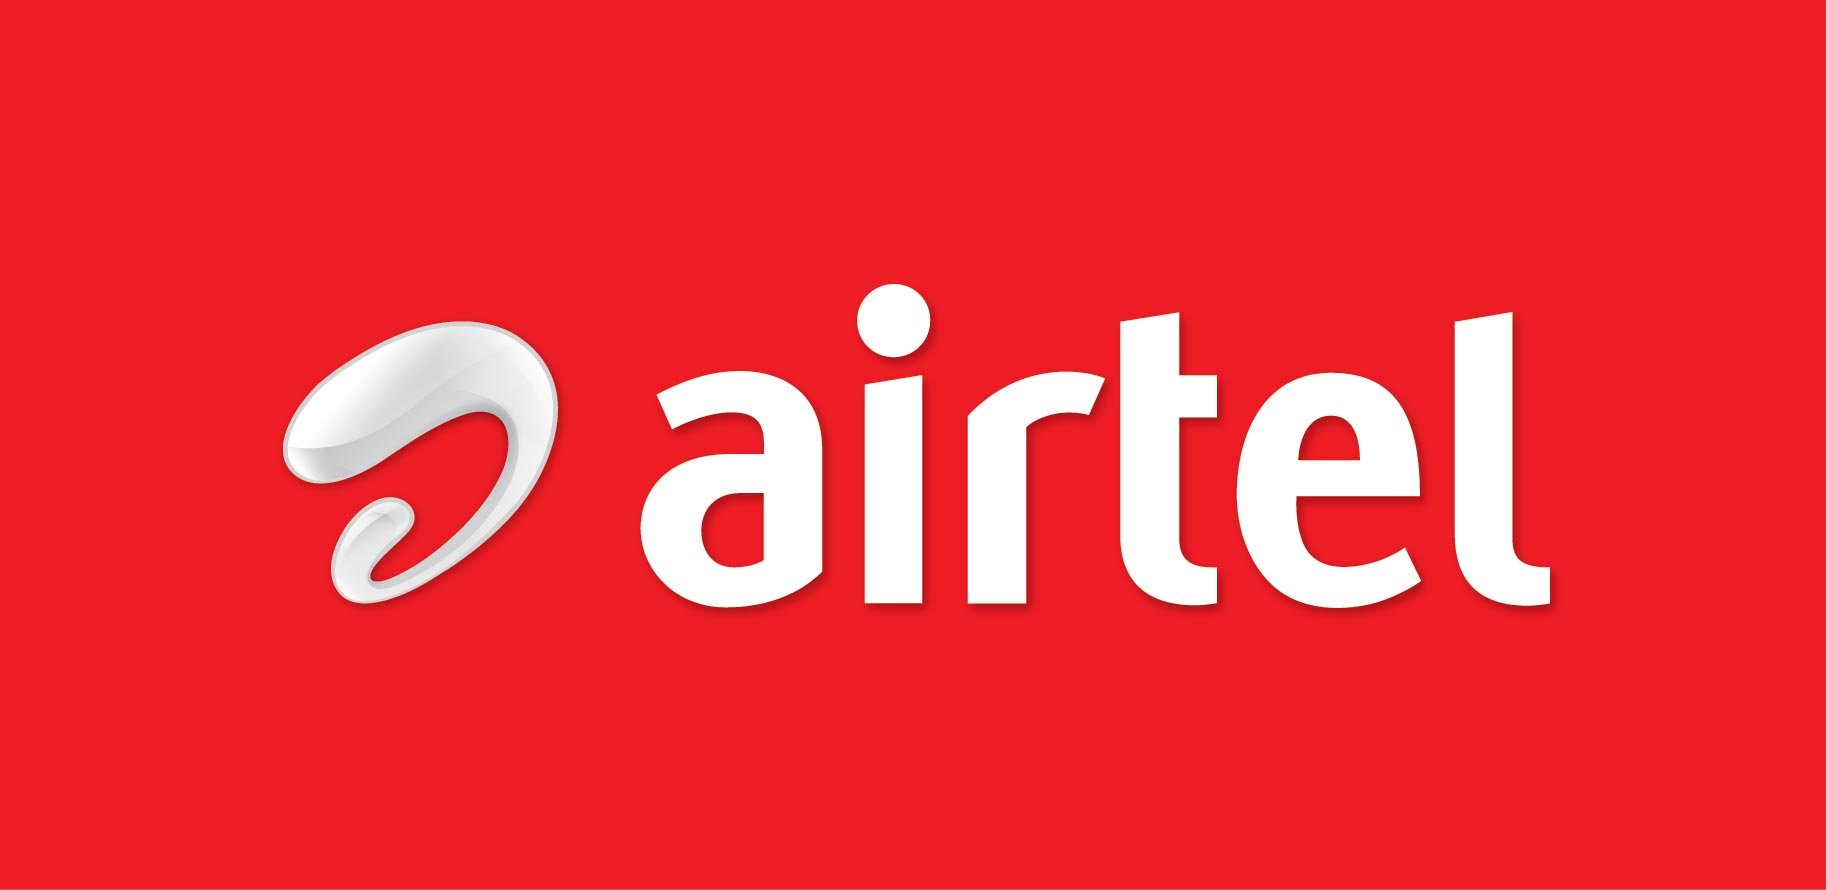 Airtel Monsoon offer to be extended 30 GB 4G Data for 3 Months More